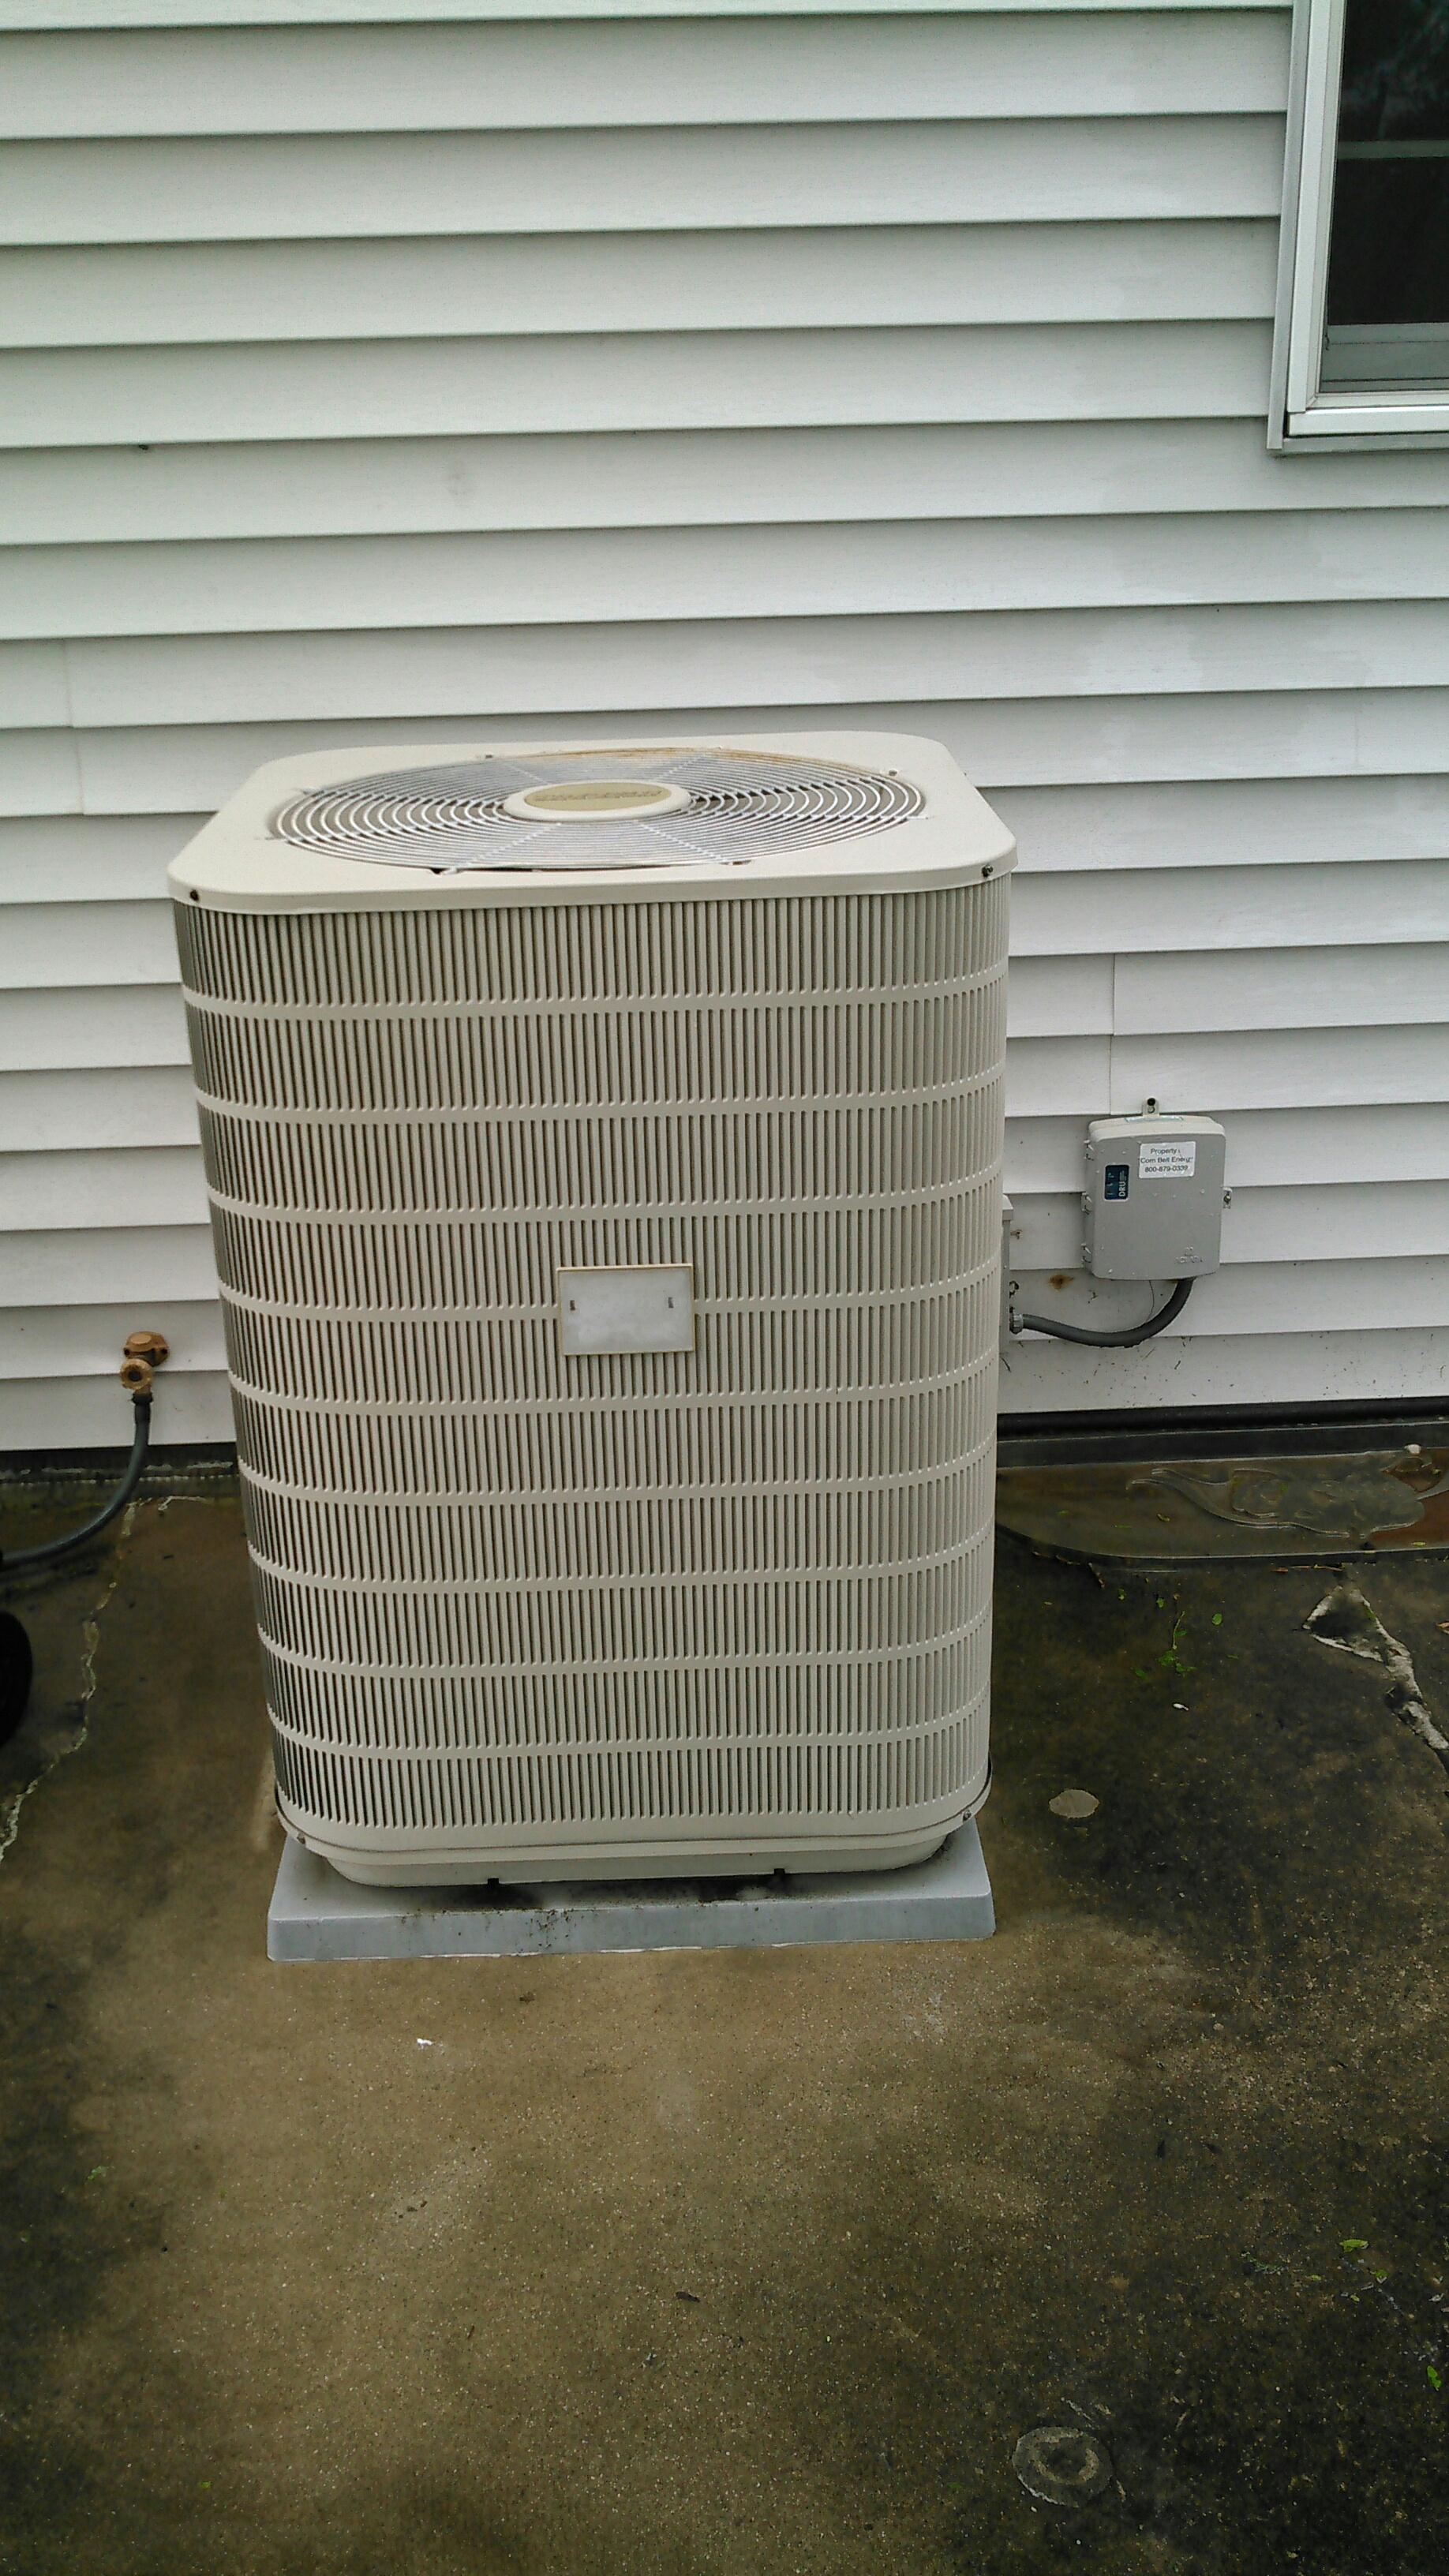 Champaign, IL - TUNE UP ON TAPPAN AIR CONDITIONER